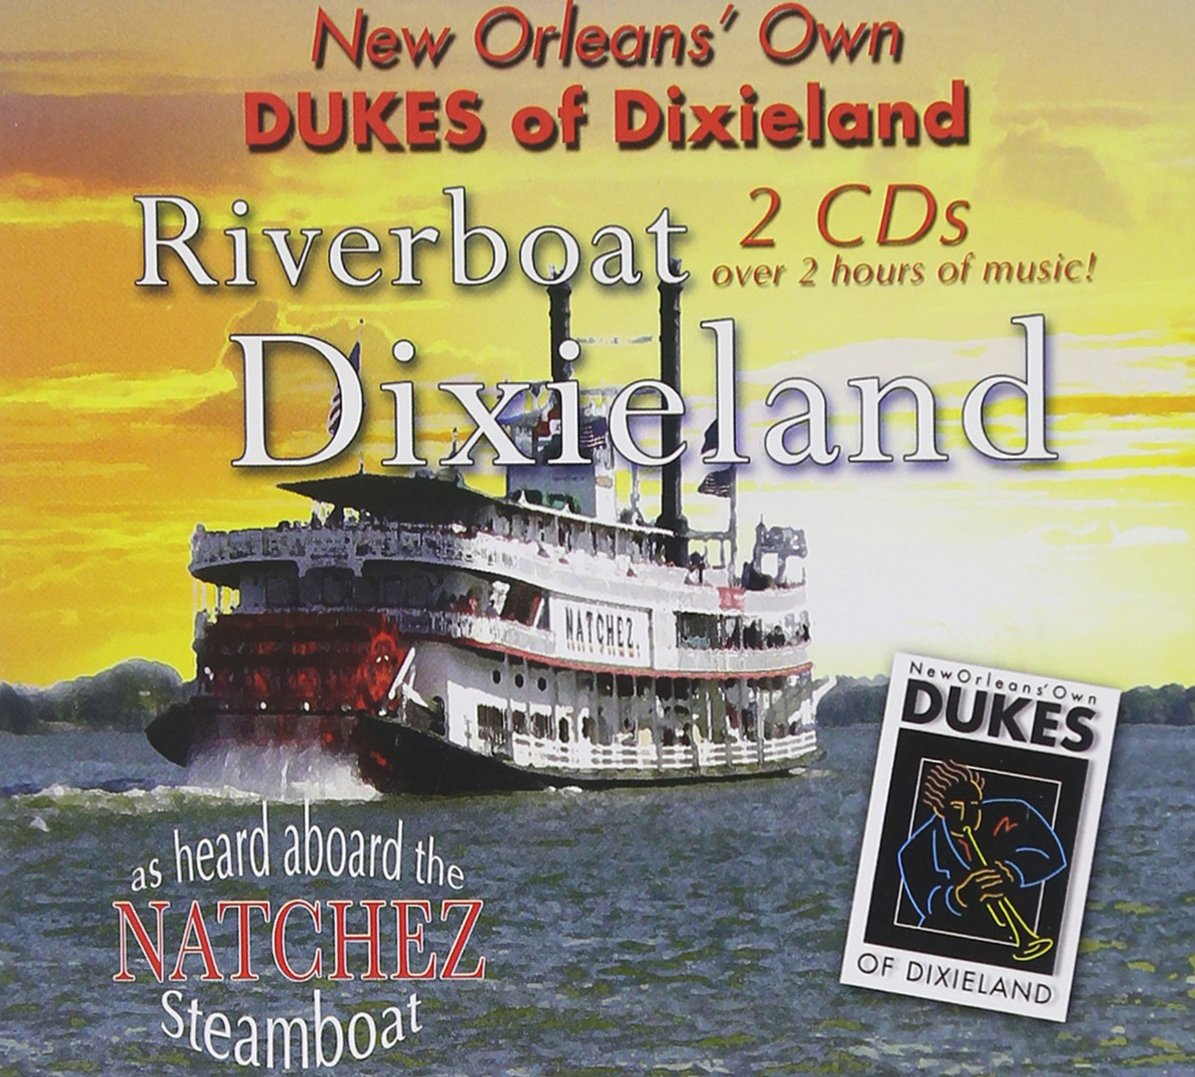 Riverboat Ranking integrated 1st place Dixieland Dedication